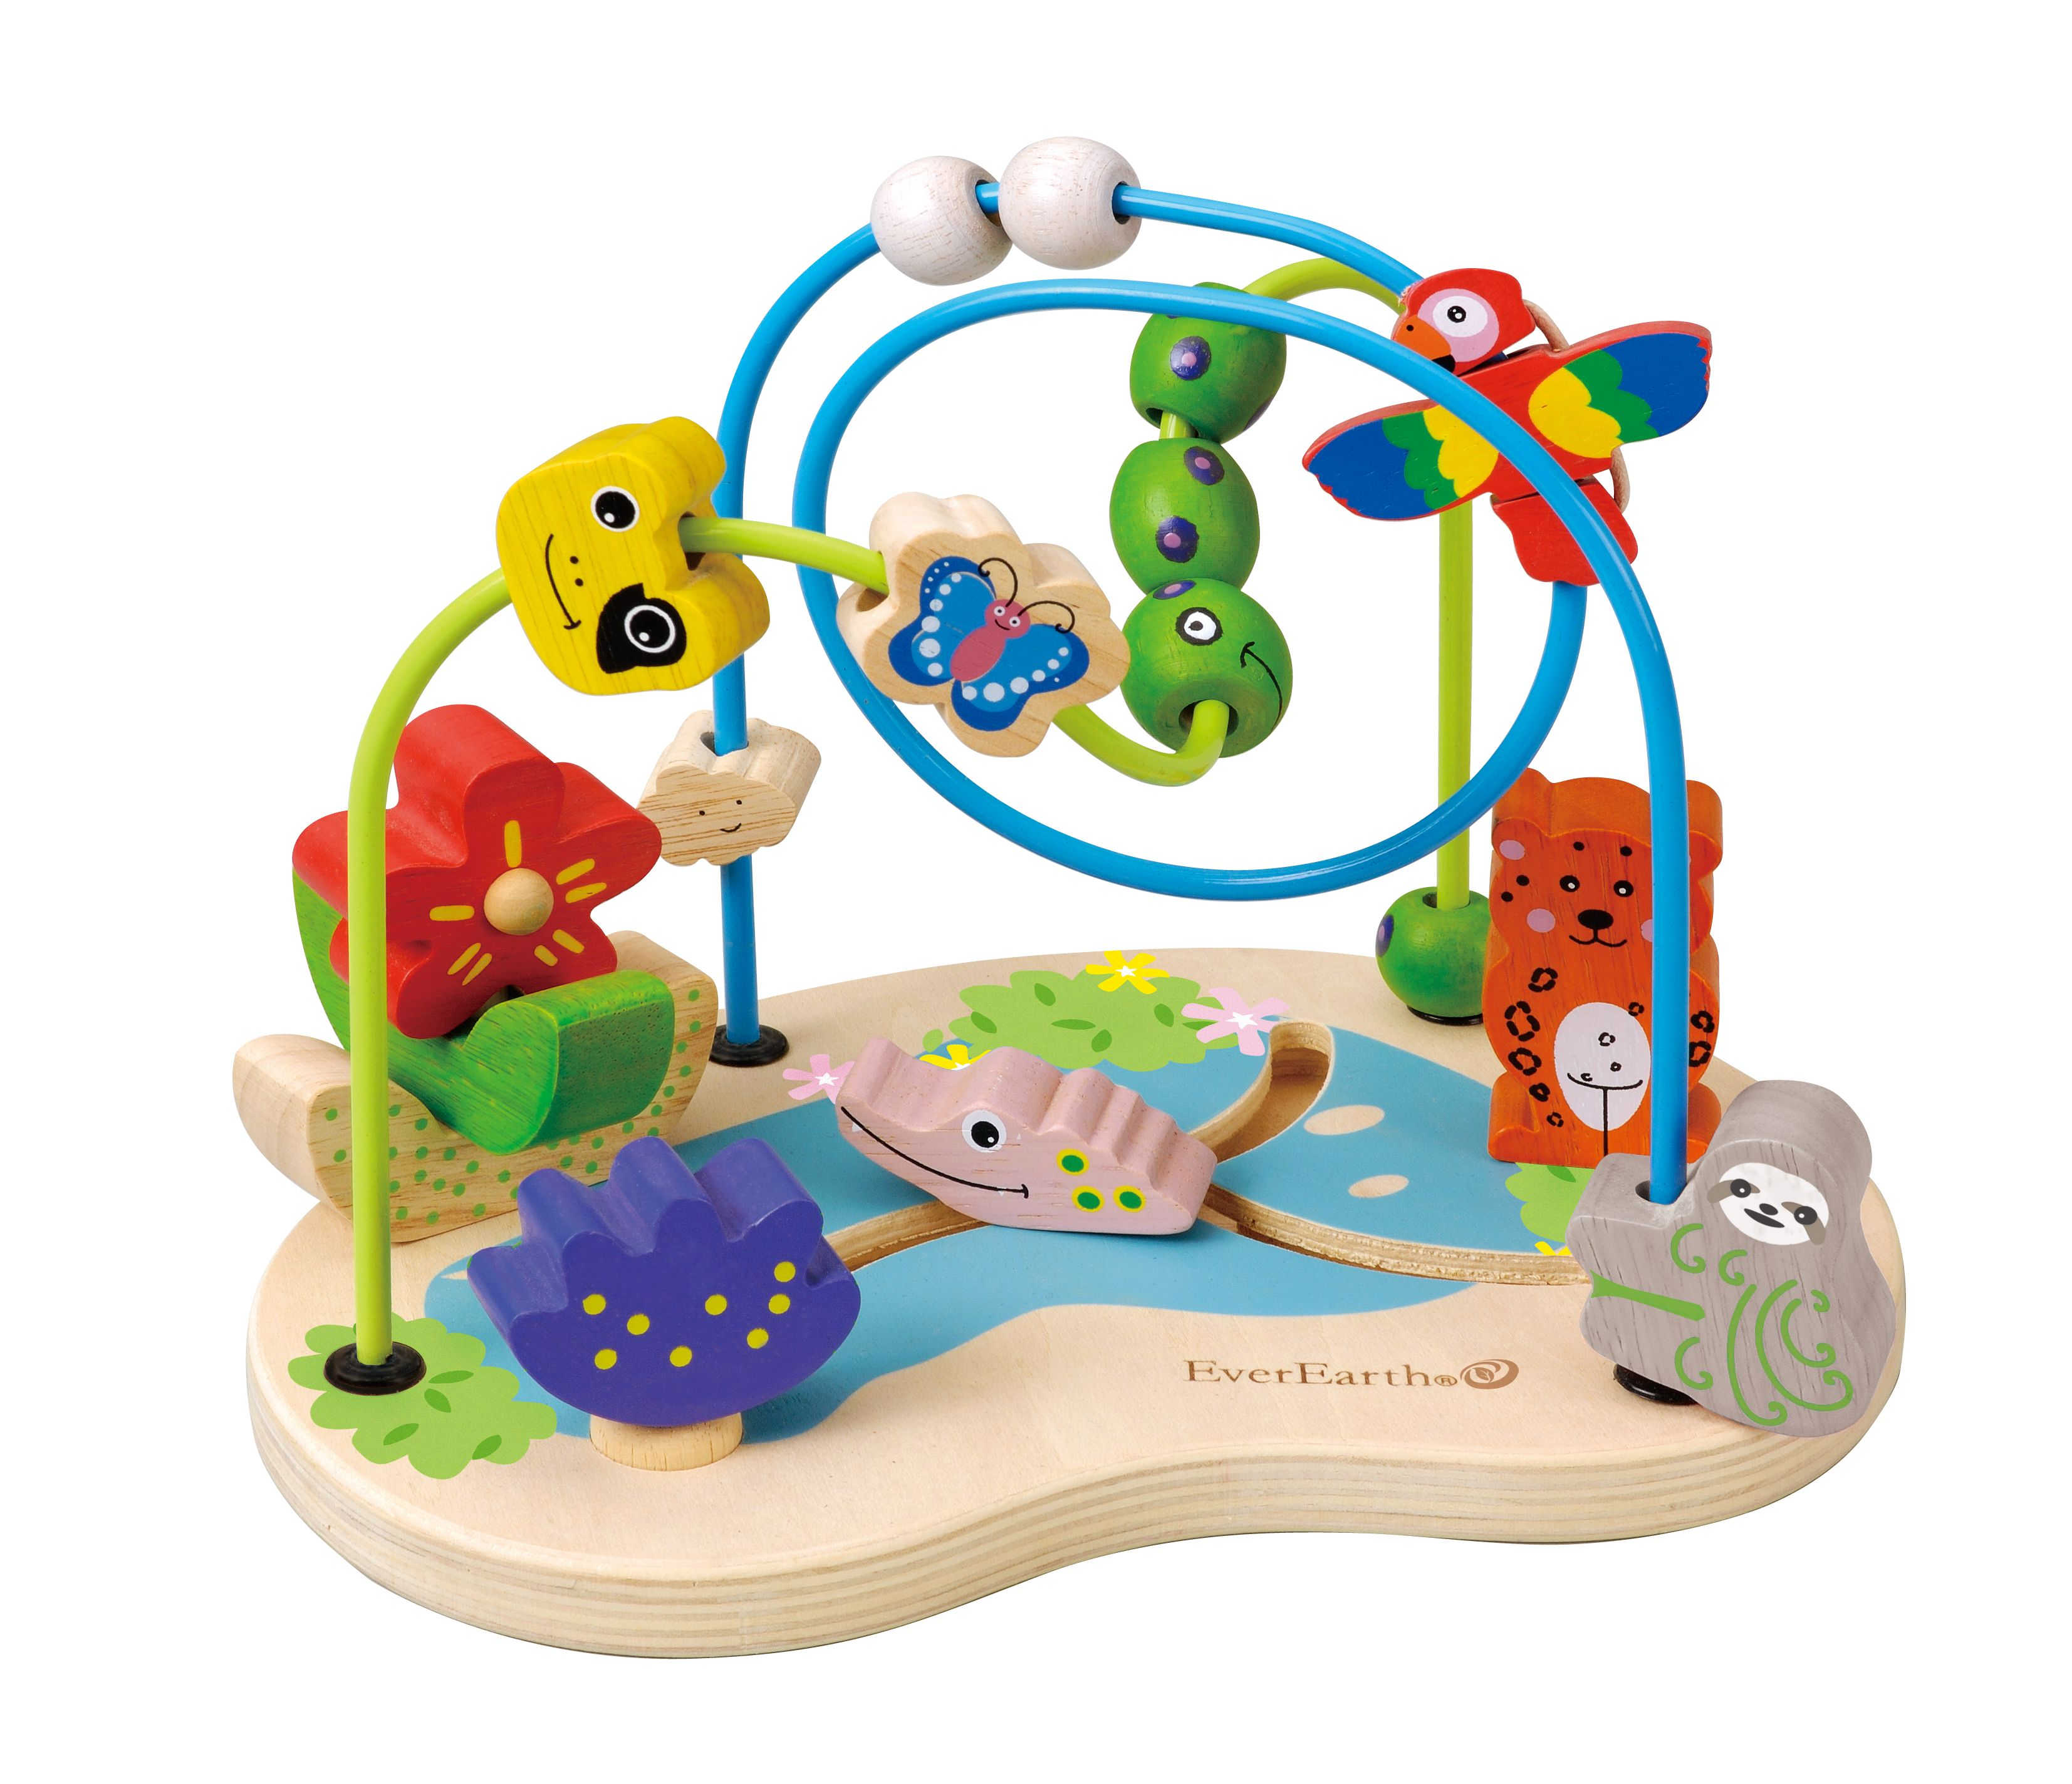 EverEarth Amazon Bead Wire Fun Educational baby toys